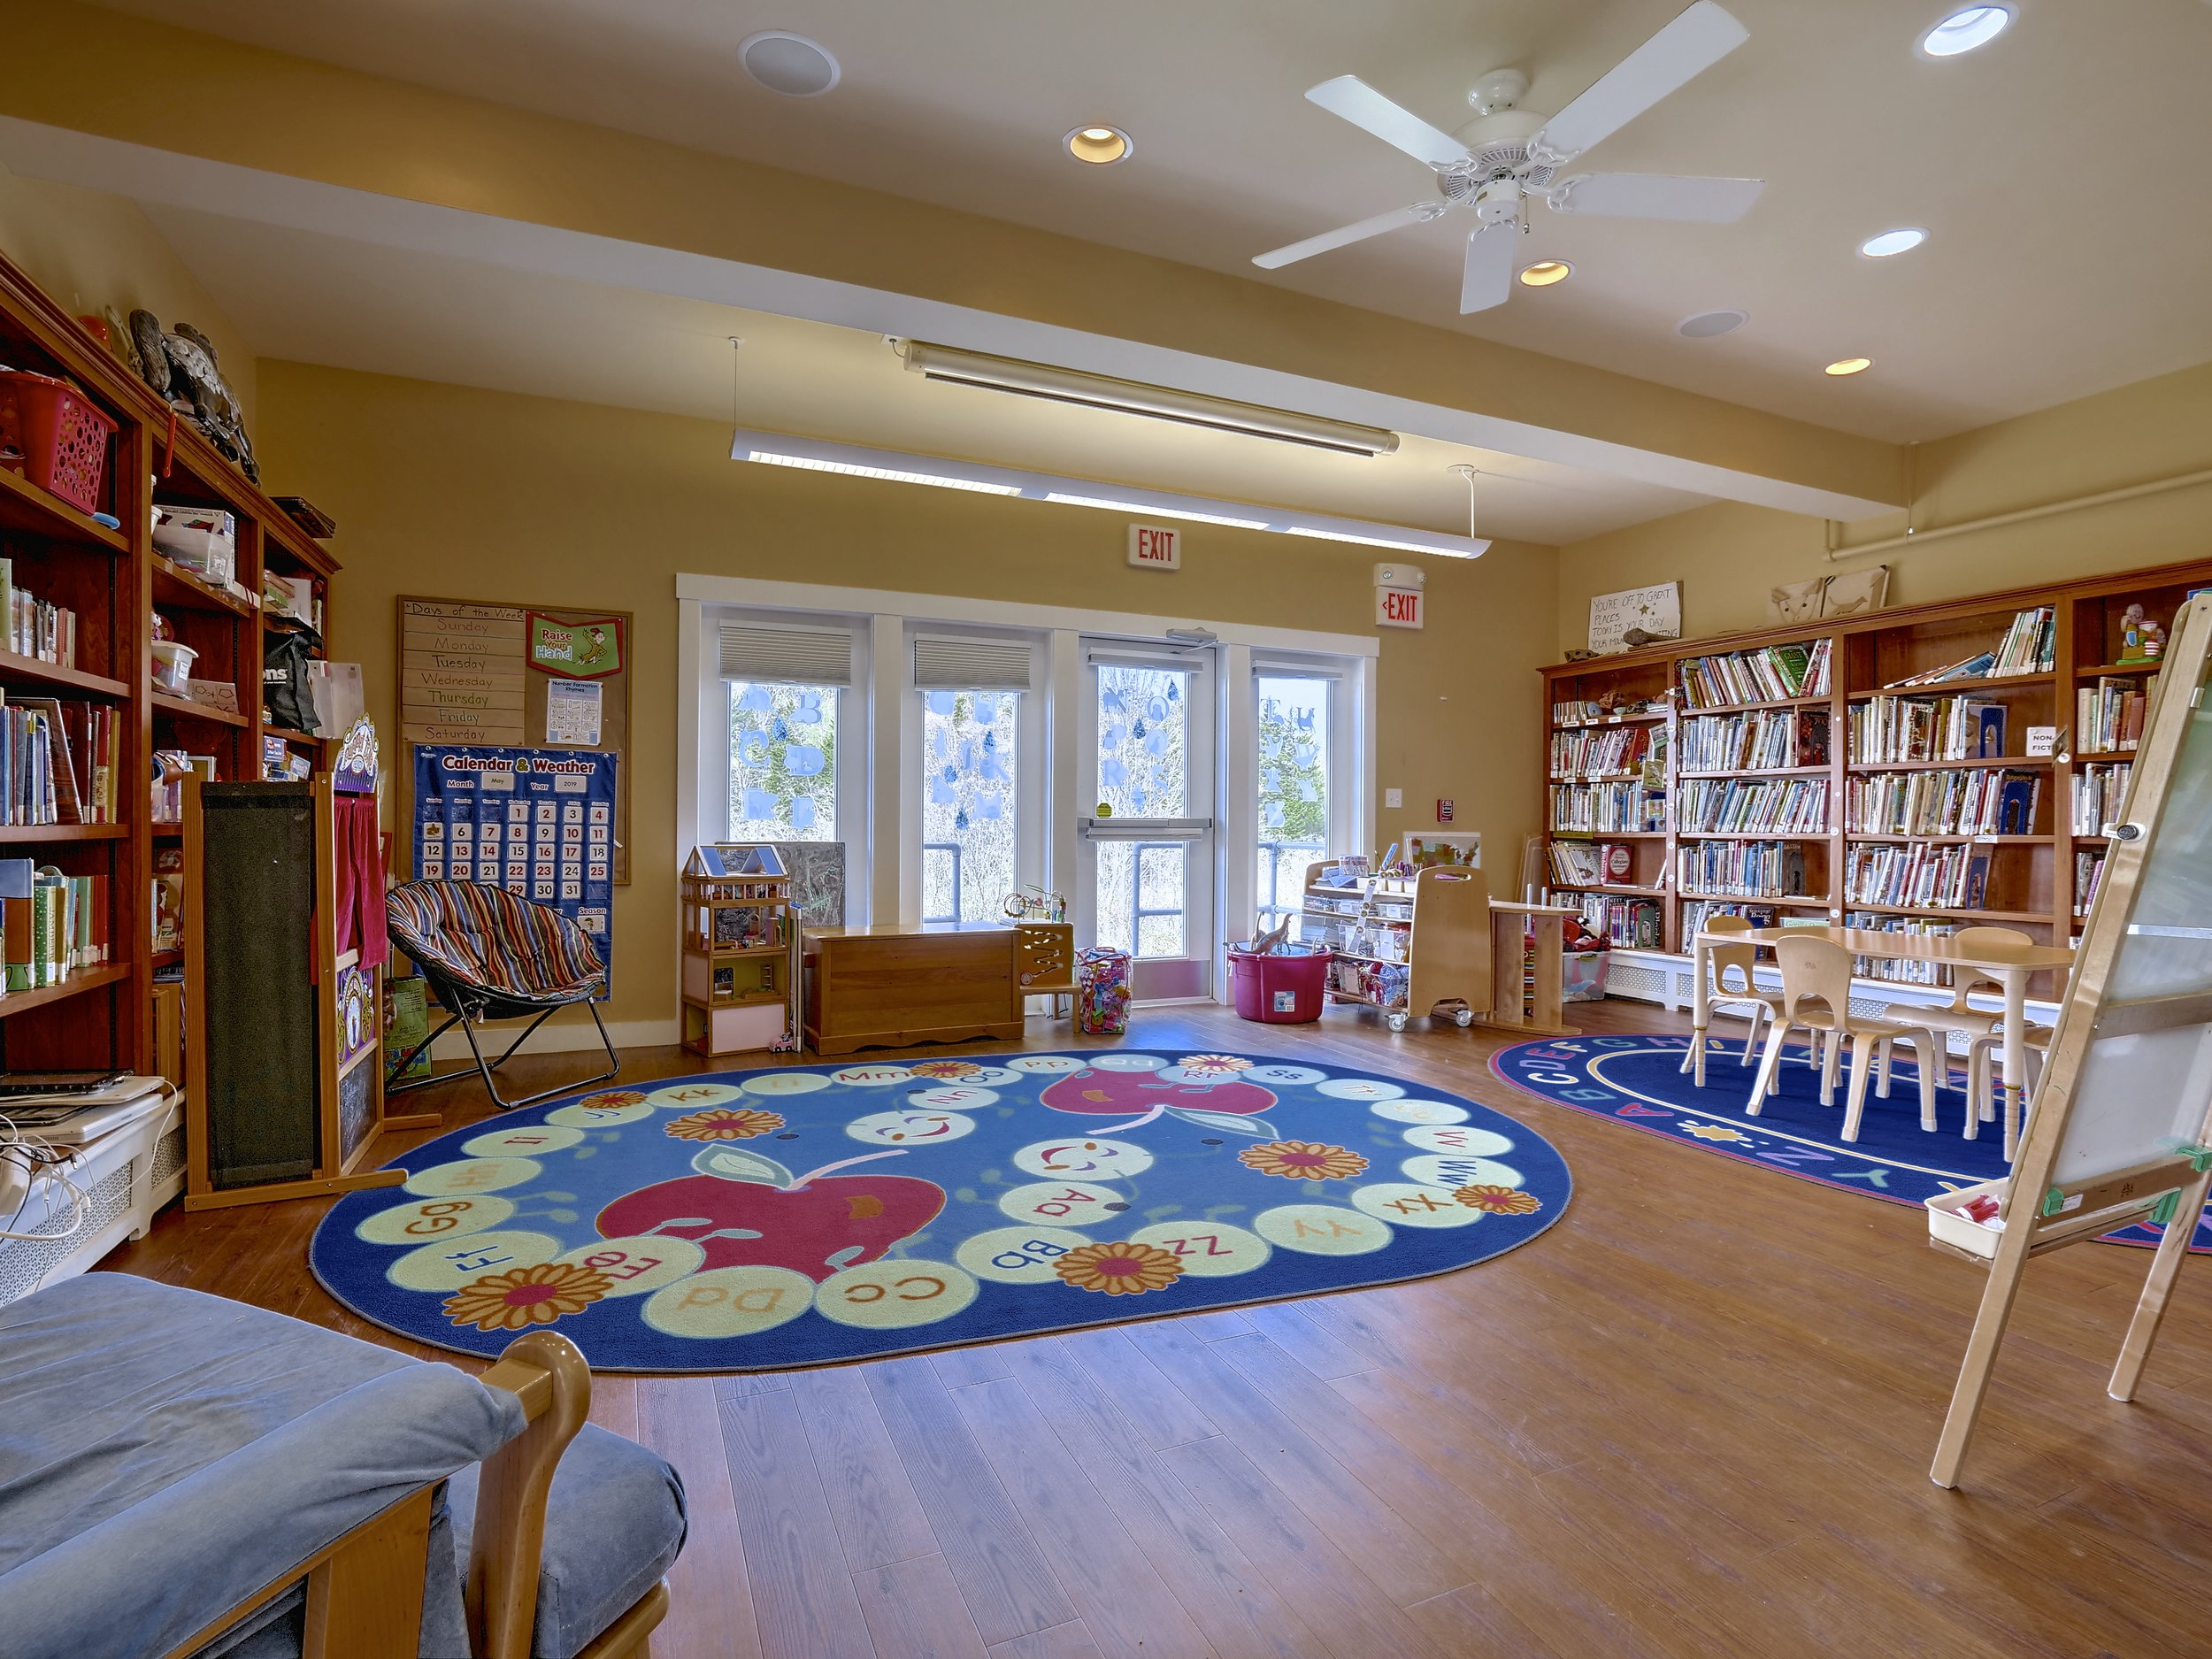 Children's Room: Fiction, Non-Fiction, DVDS, AUdiobooks, puzzles, games, toys.